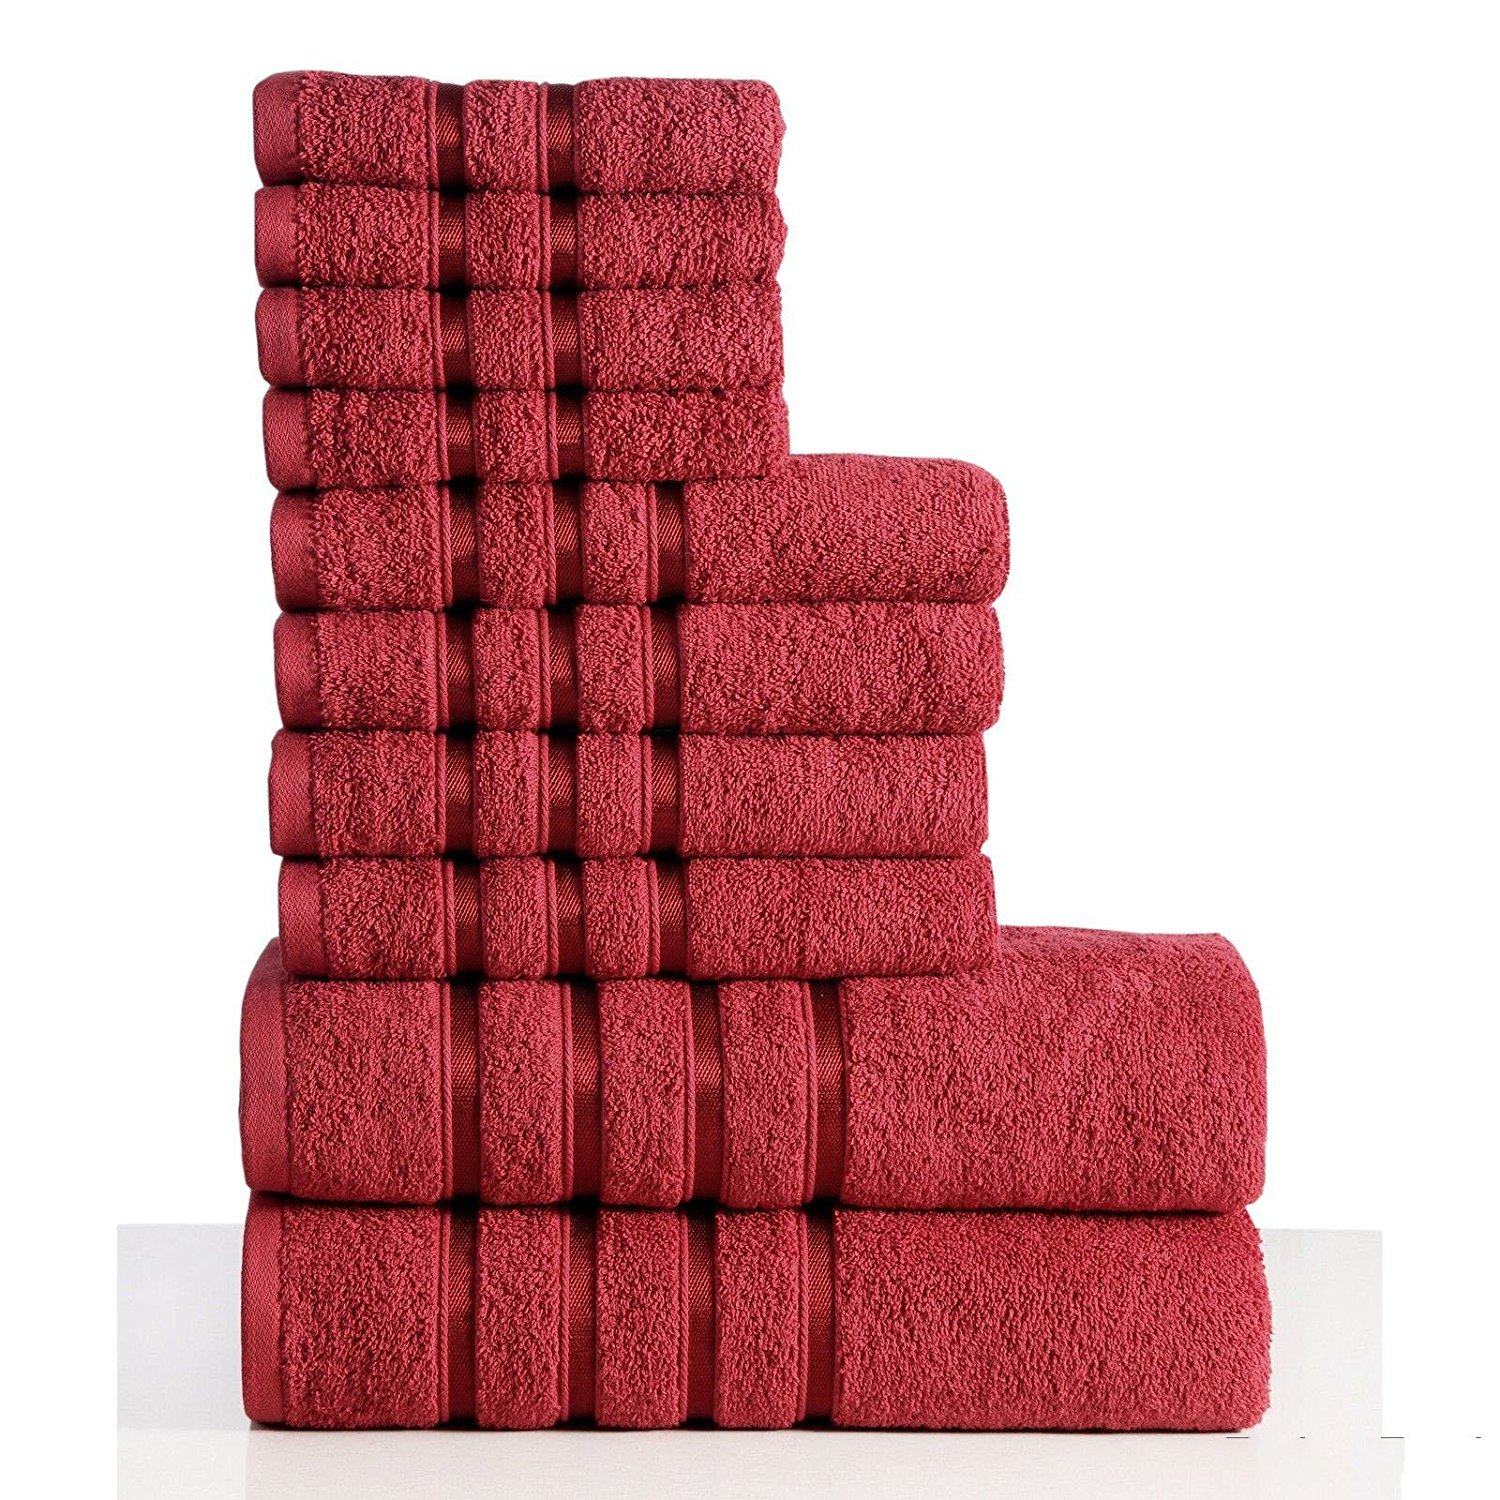 100% Combed Cotton 550 GSM 10-piece Towel Set Bath Towel Hand Face Washcloth Shower Bathroom (Red)